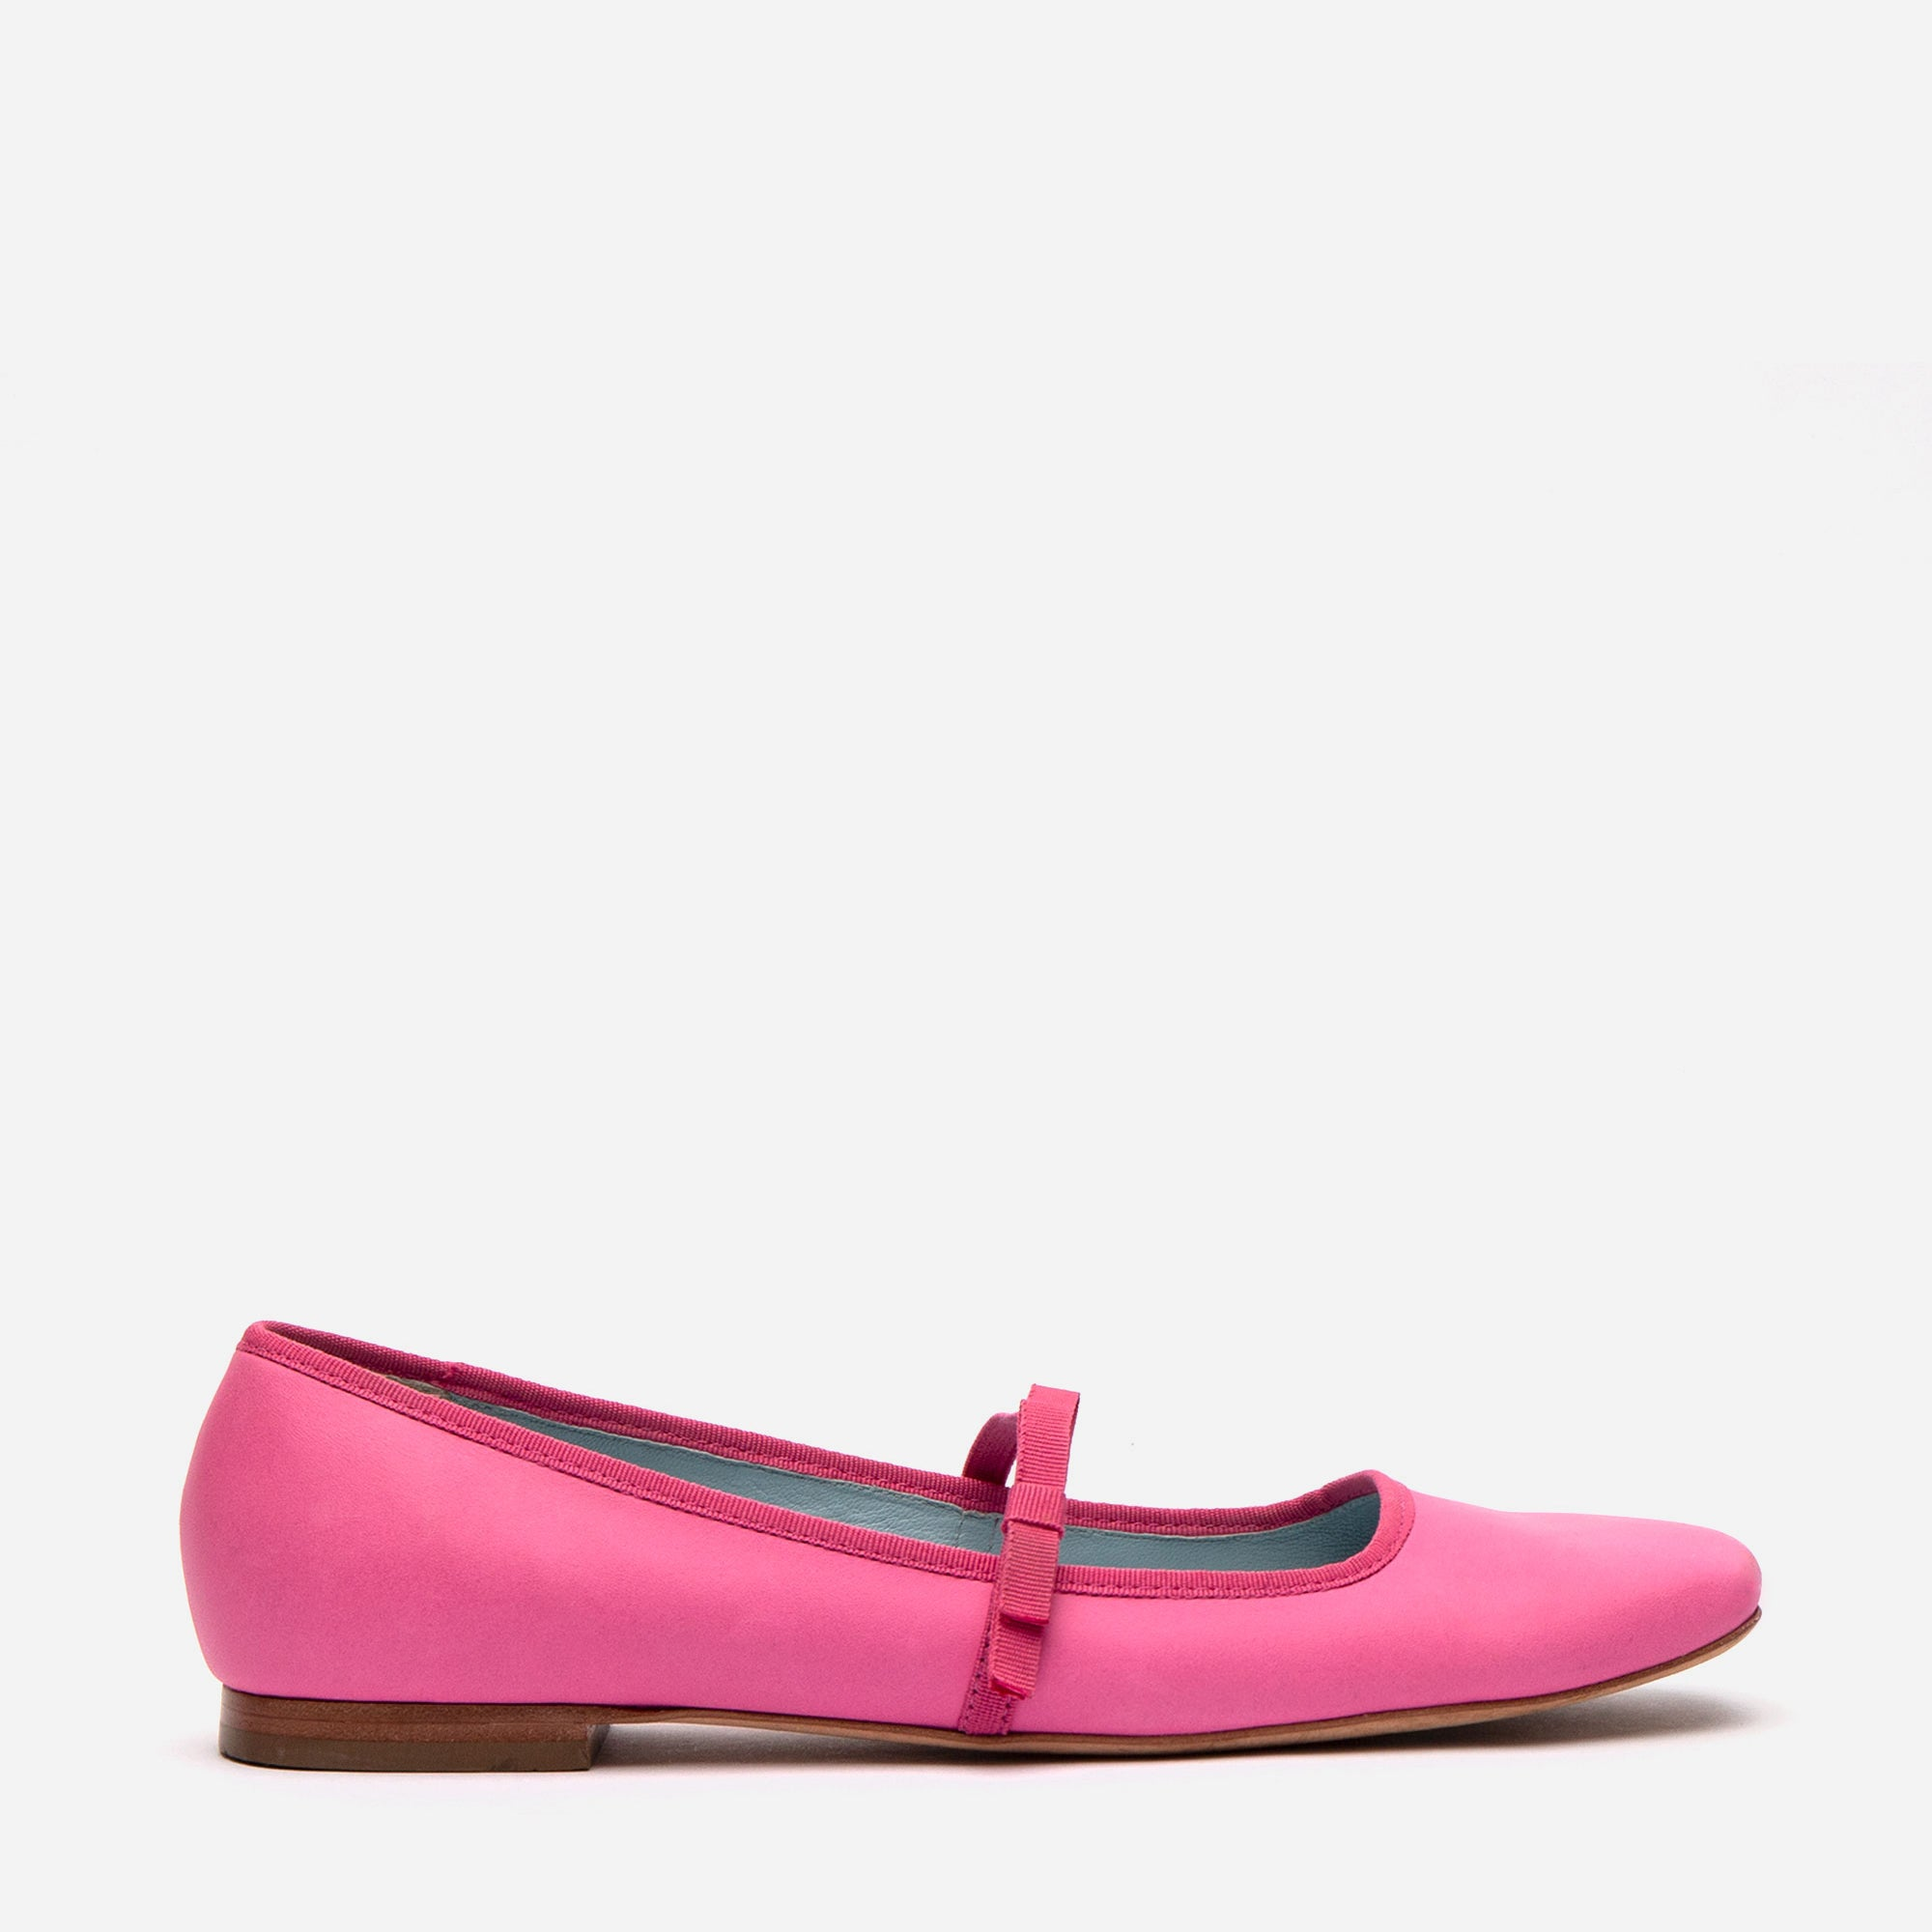 Jude Mary Jane Leather Flats Pink